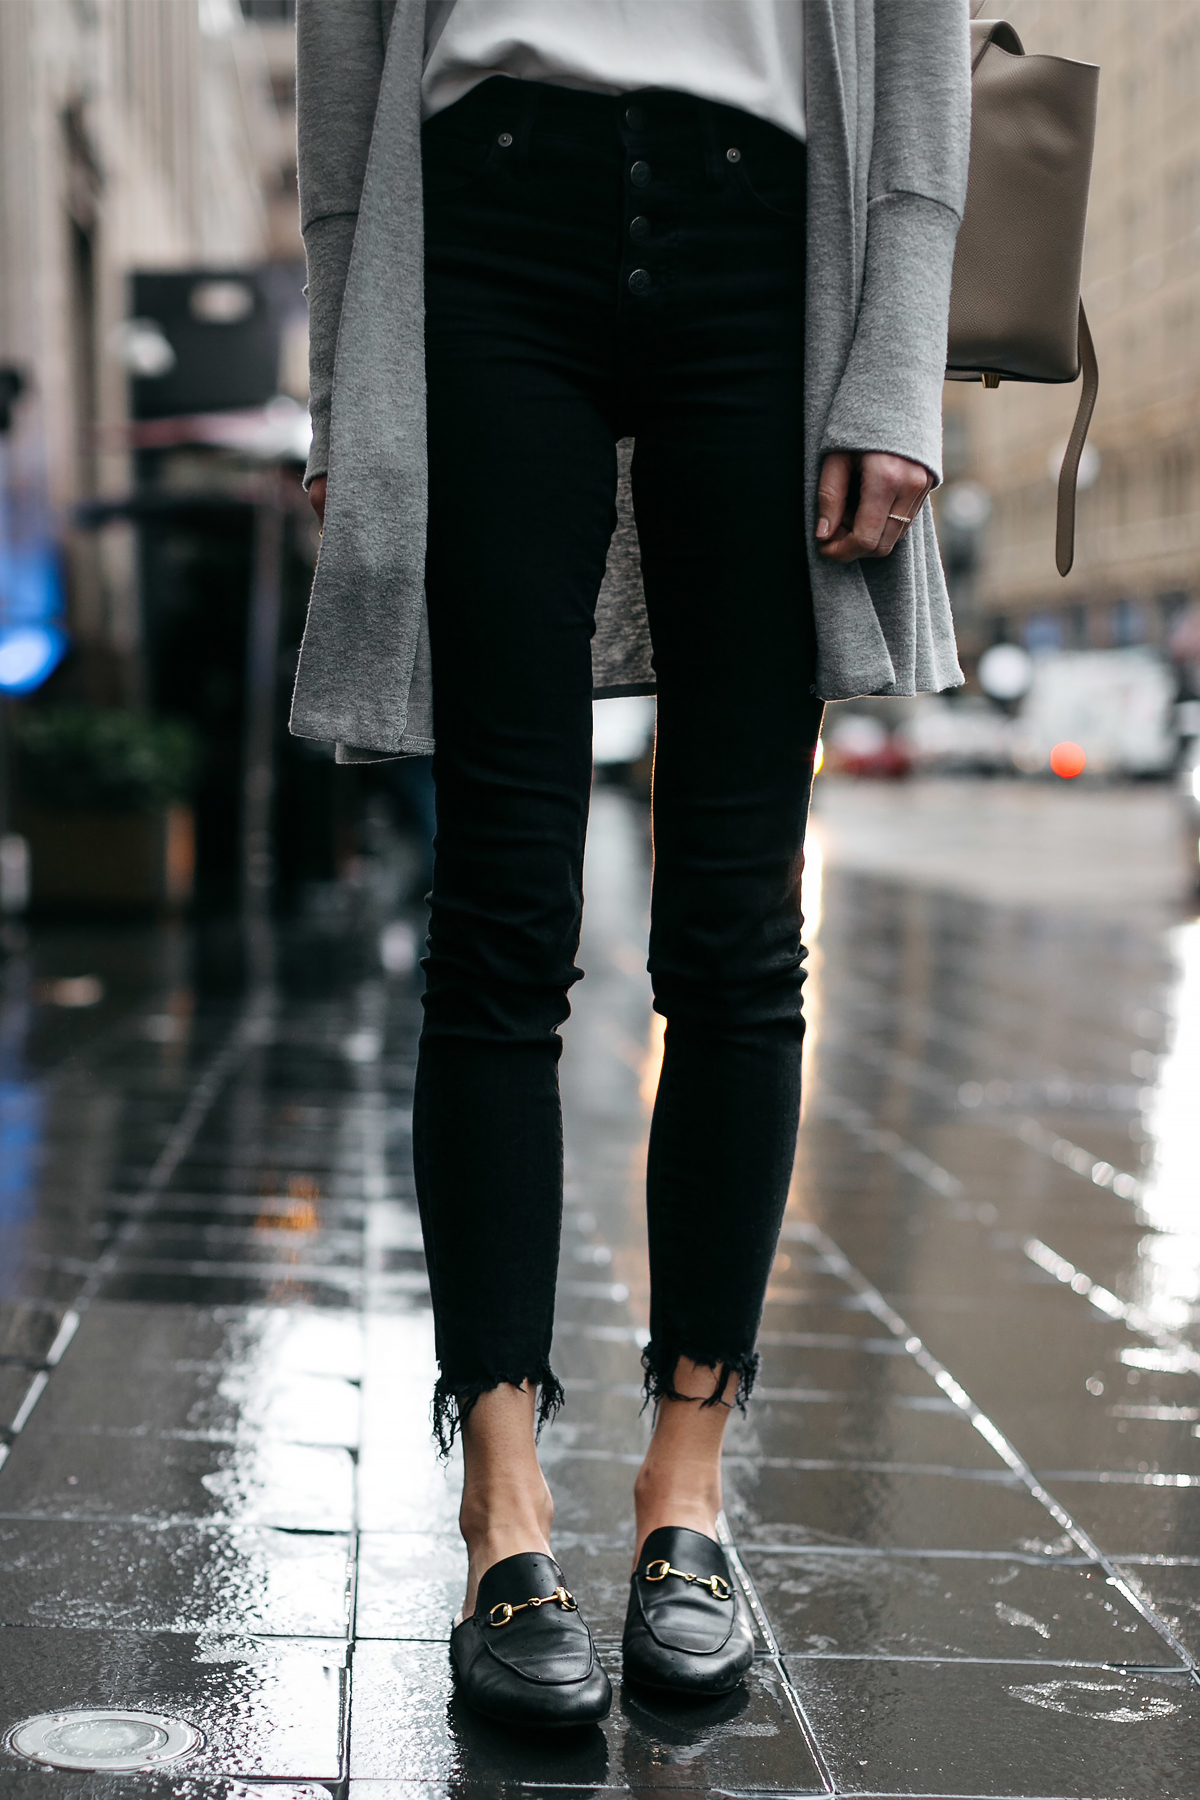 a521fdd0a246 Woman Wearing Madewell Black Ripped Skinny Jeans Gucci Princetown Black  Mules Fashion Jackson Dallas Blogger Fashion